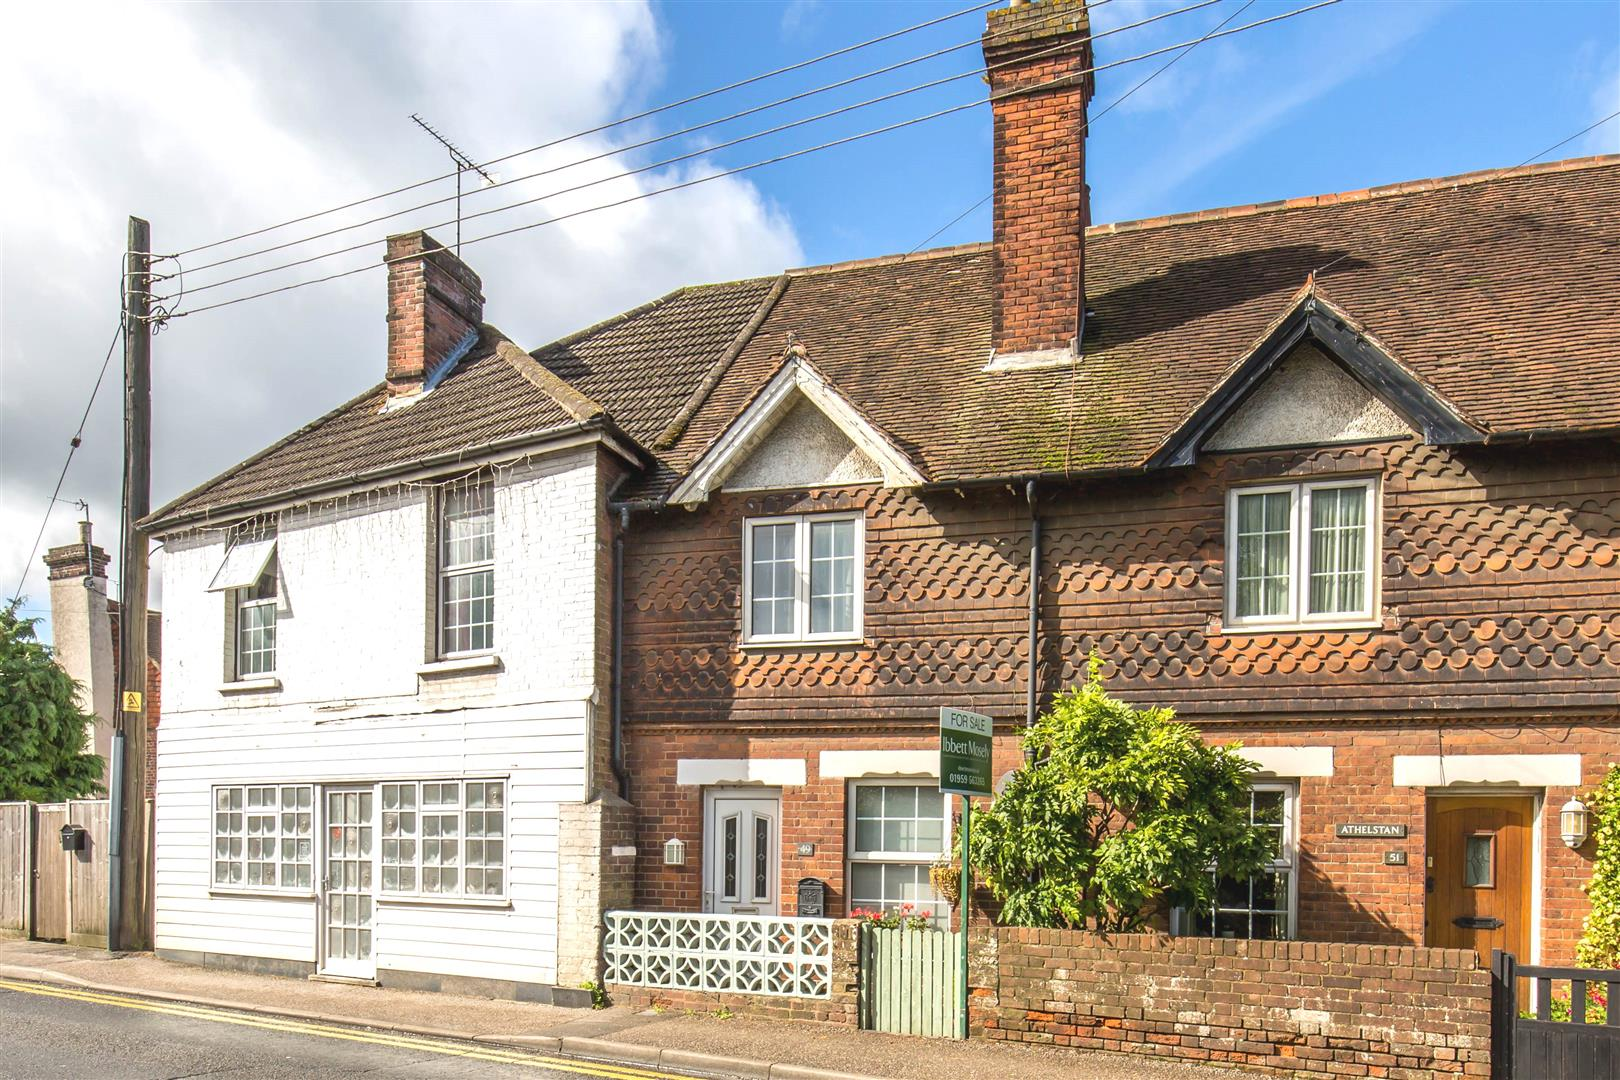 2 Bedrooms Terraced House for sale in London Road, Westerham